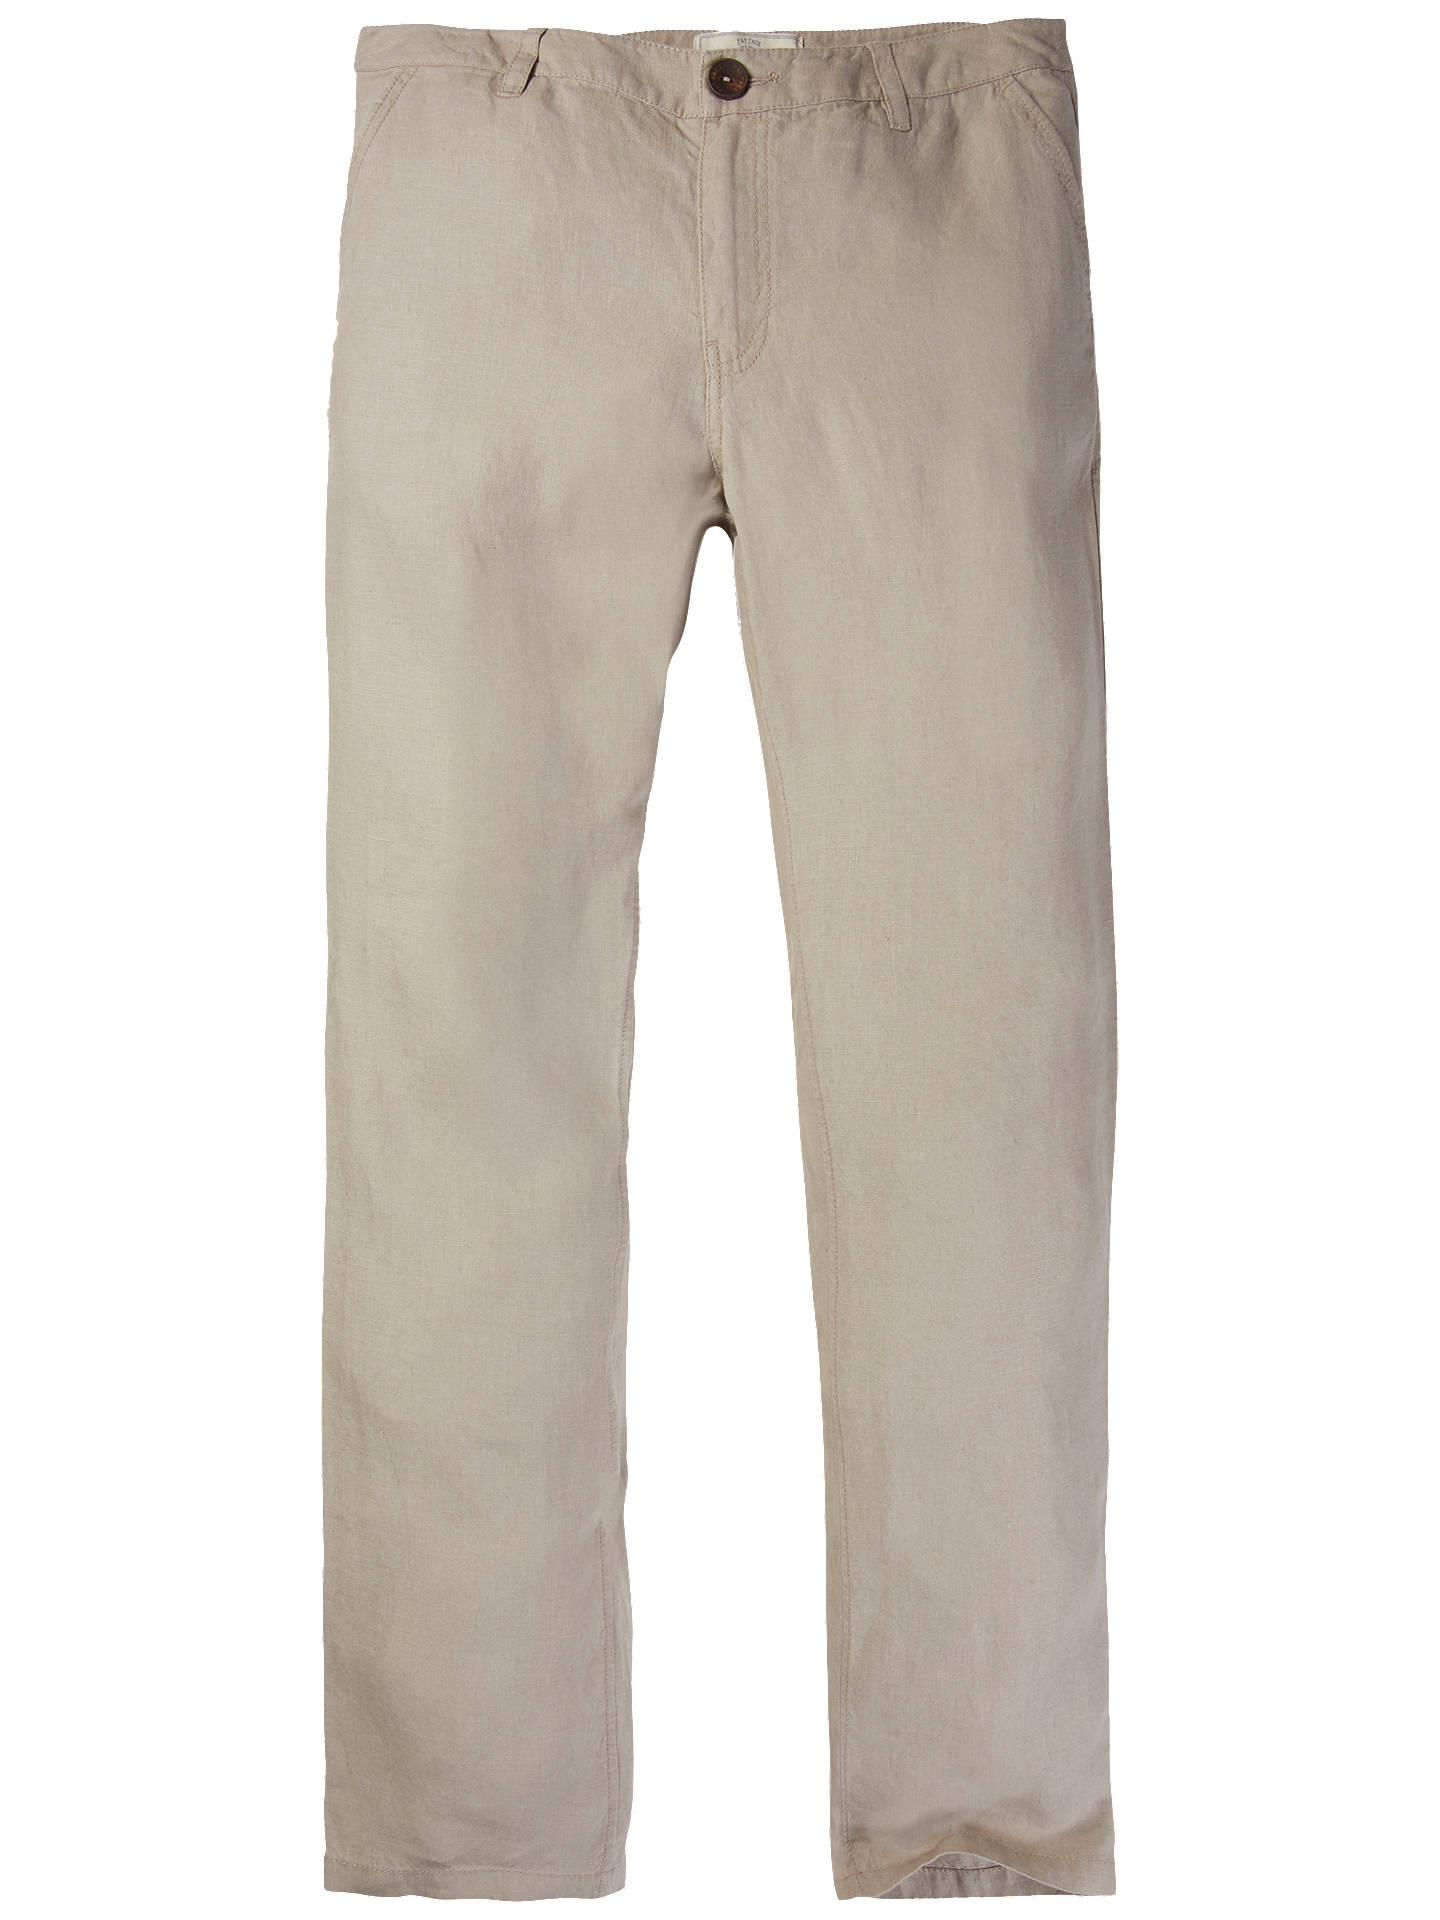 outlet sale running shoes top design Fat Face Linen Trousers at John Lewis & Partners